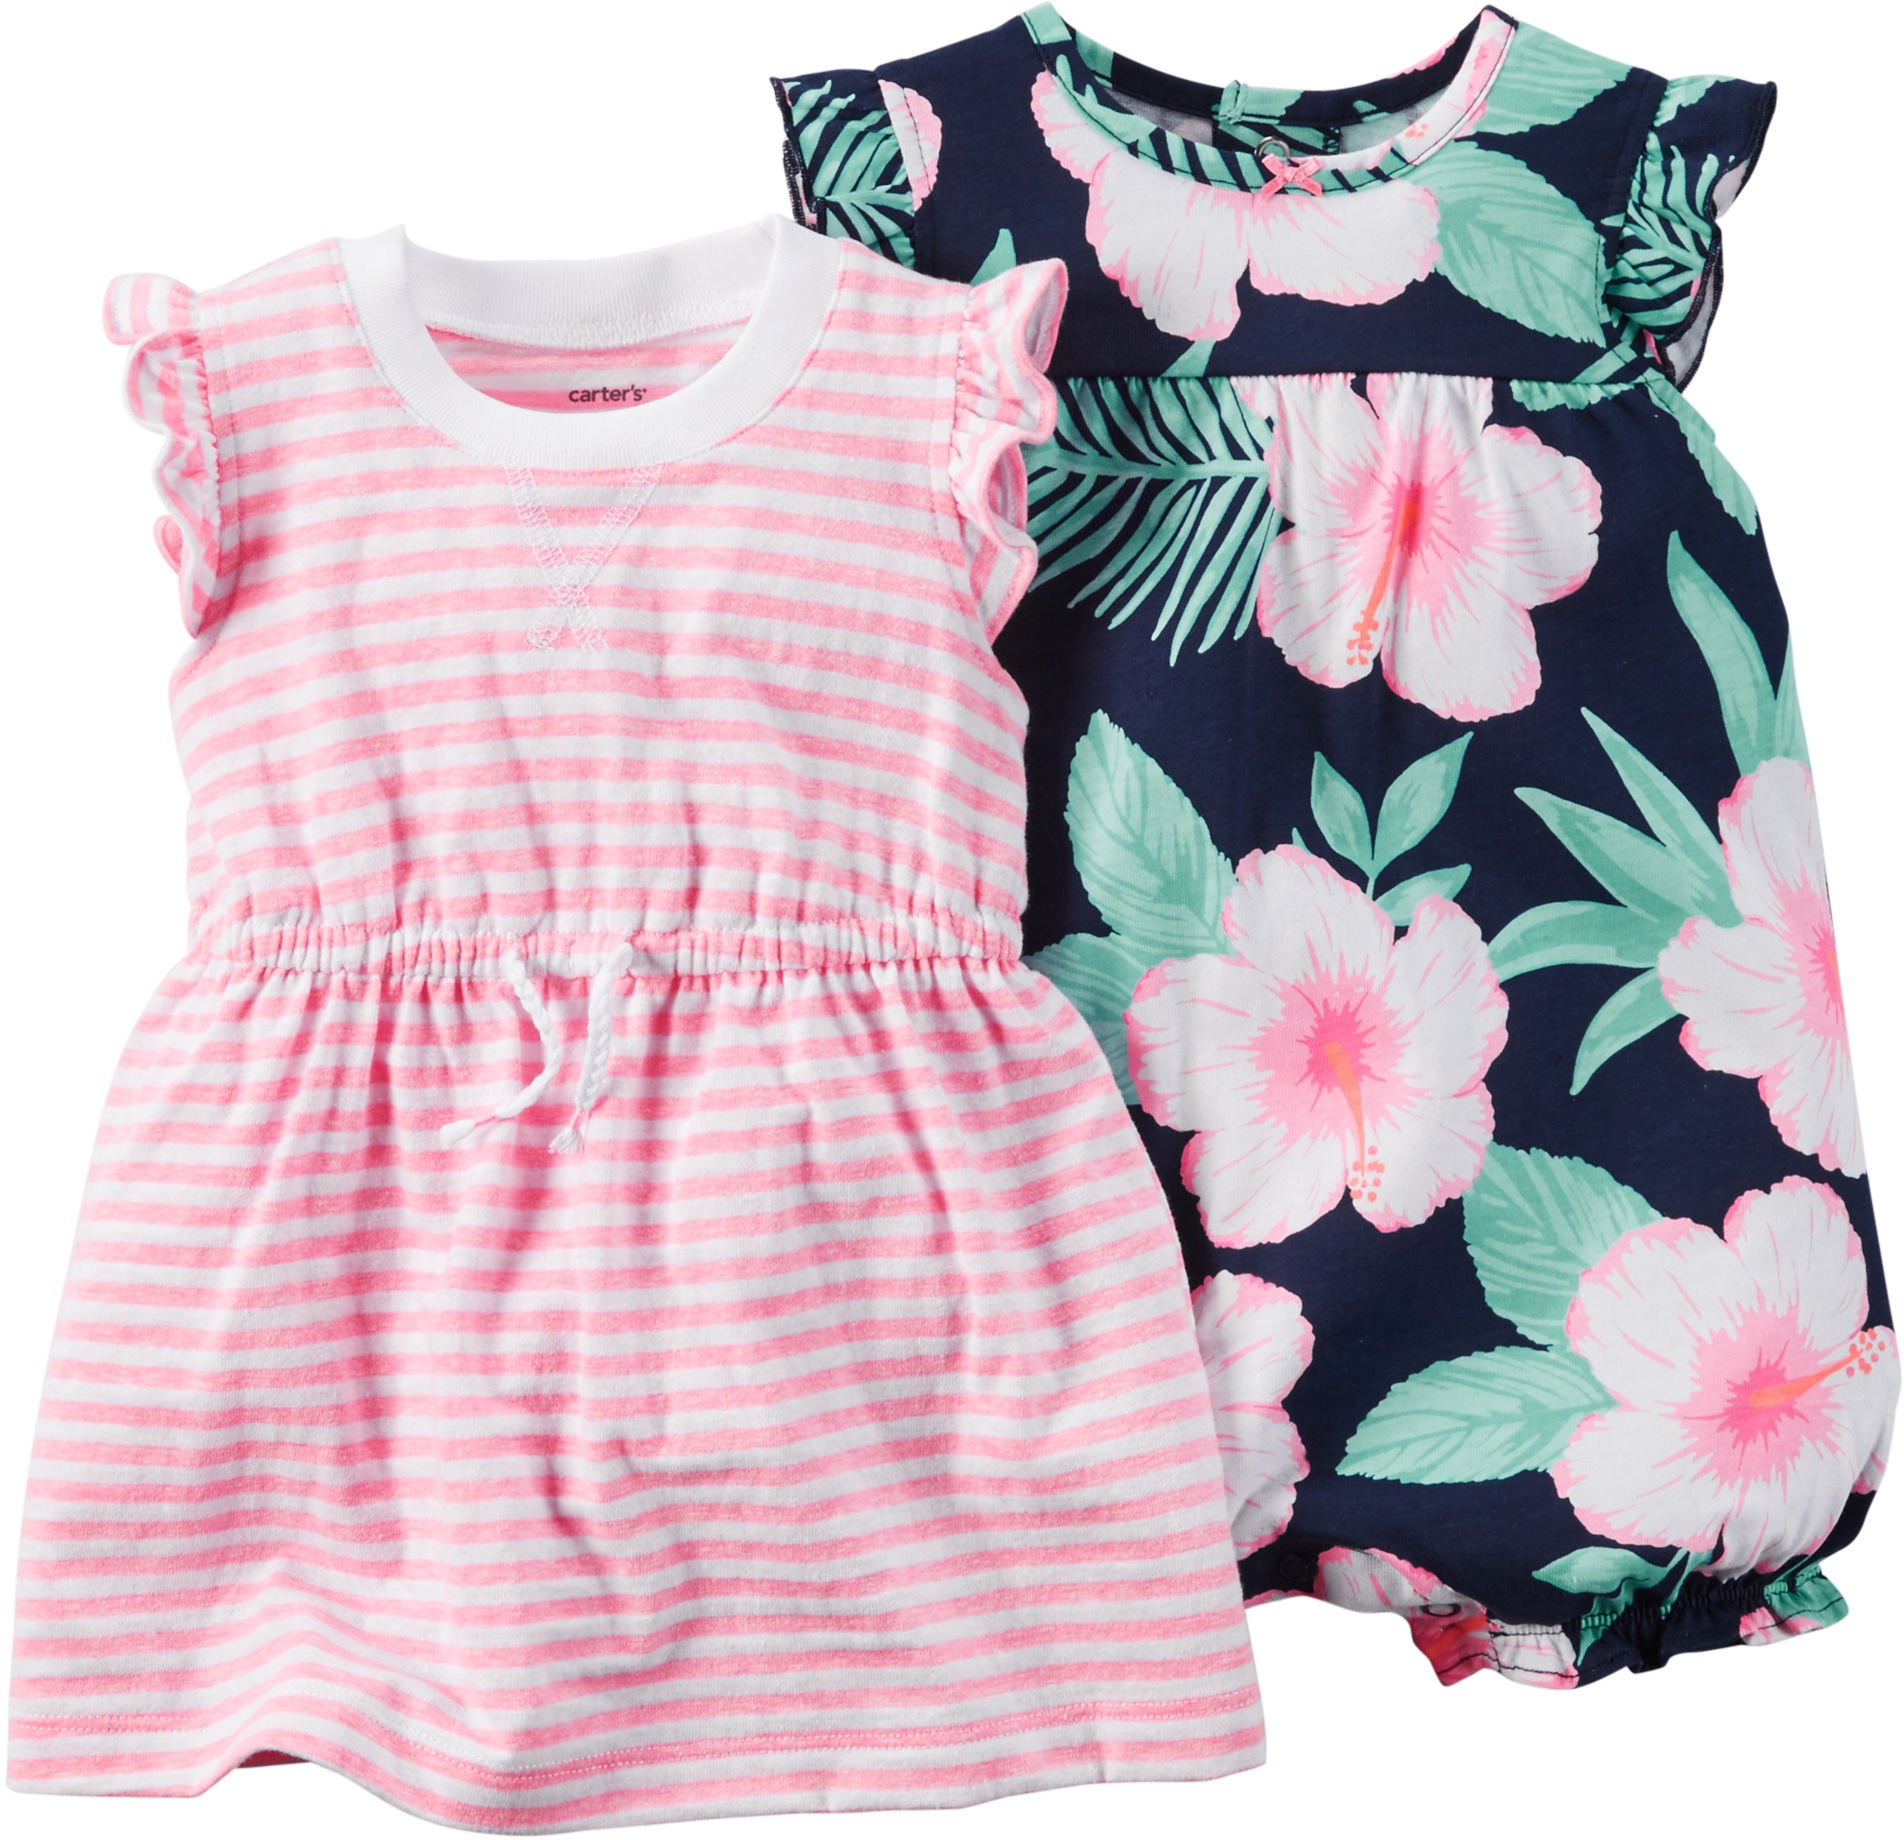 Carter's Baby Girls' 2 Pack Rompers 121g480, Pink Floral, 9 Months